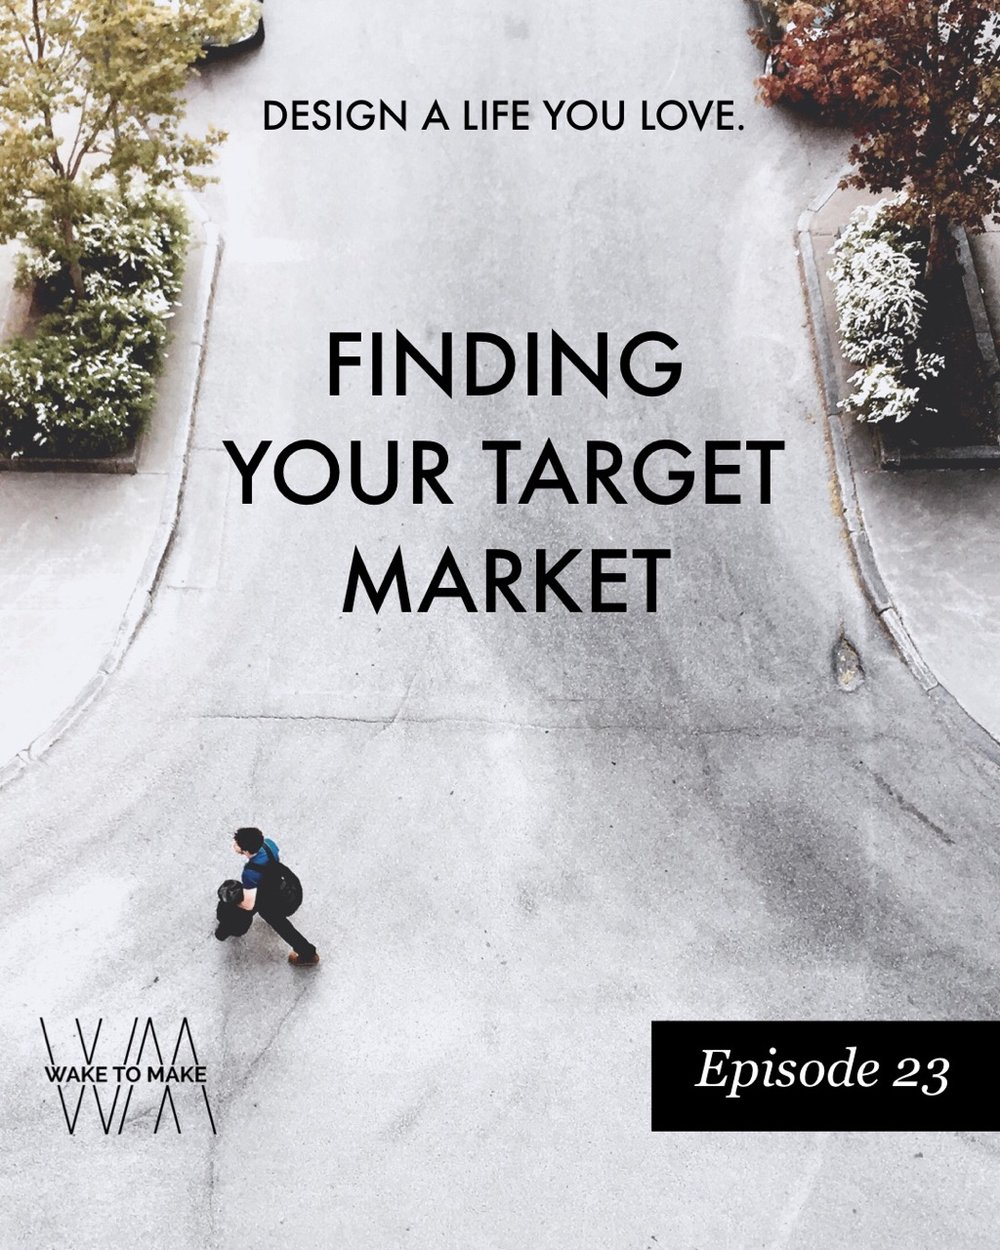 Episode 23 - Finding Your Target Market (People Like People)